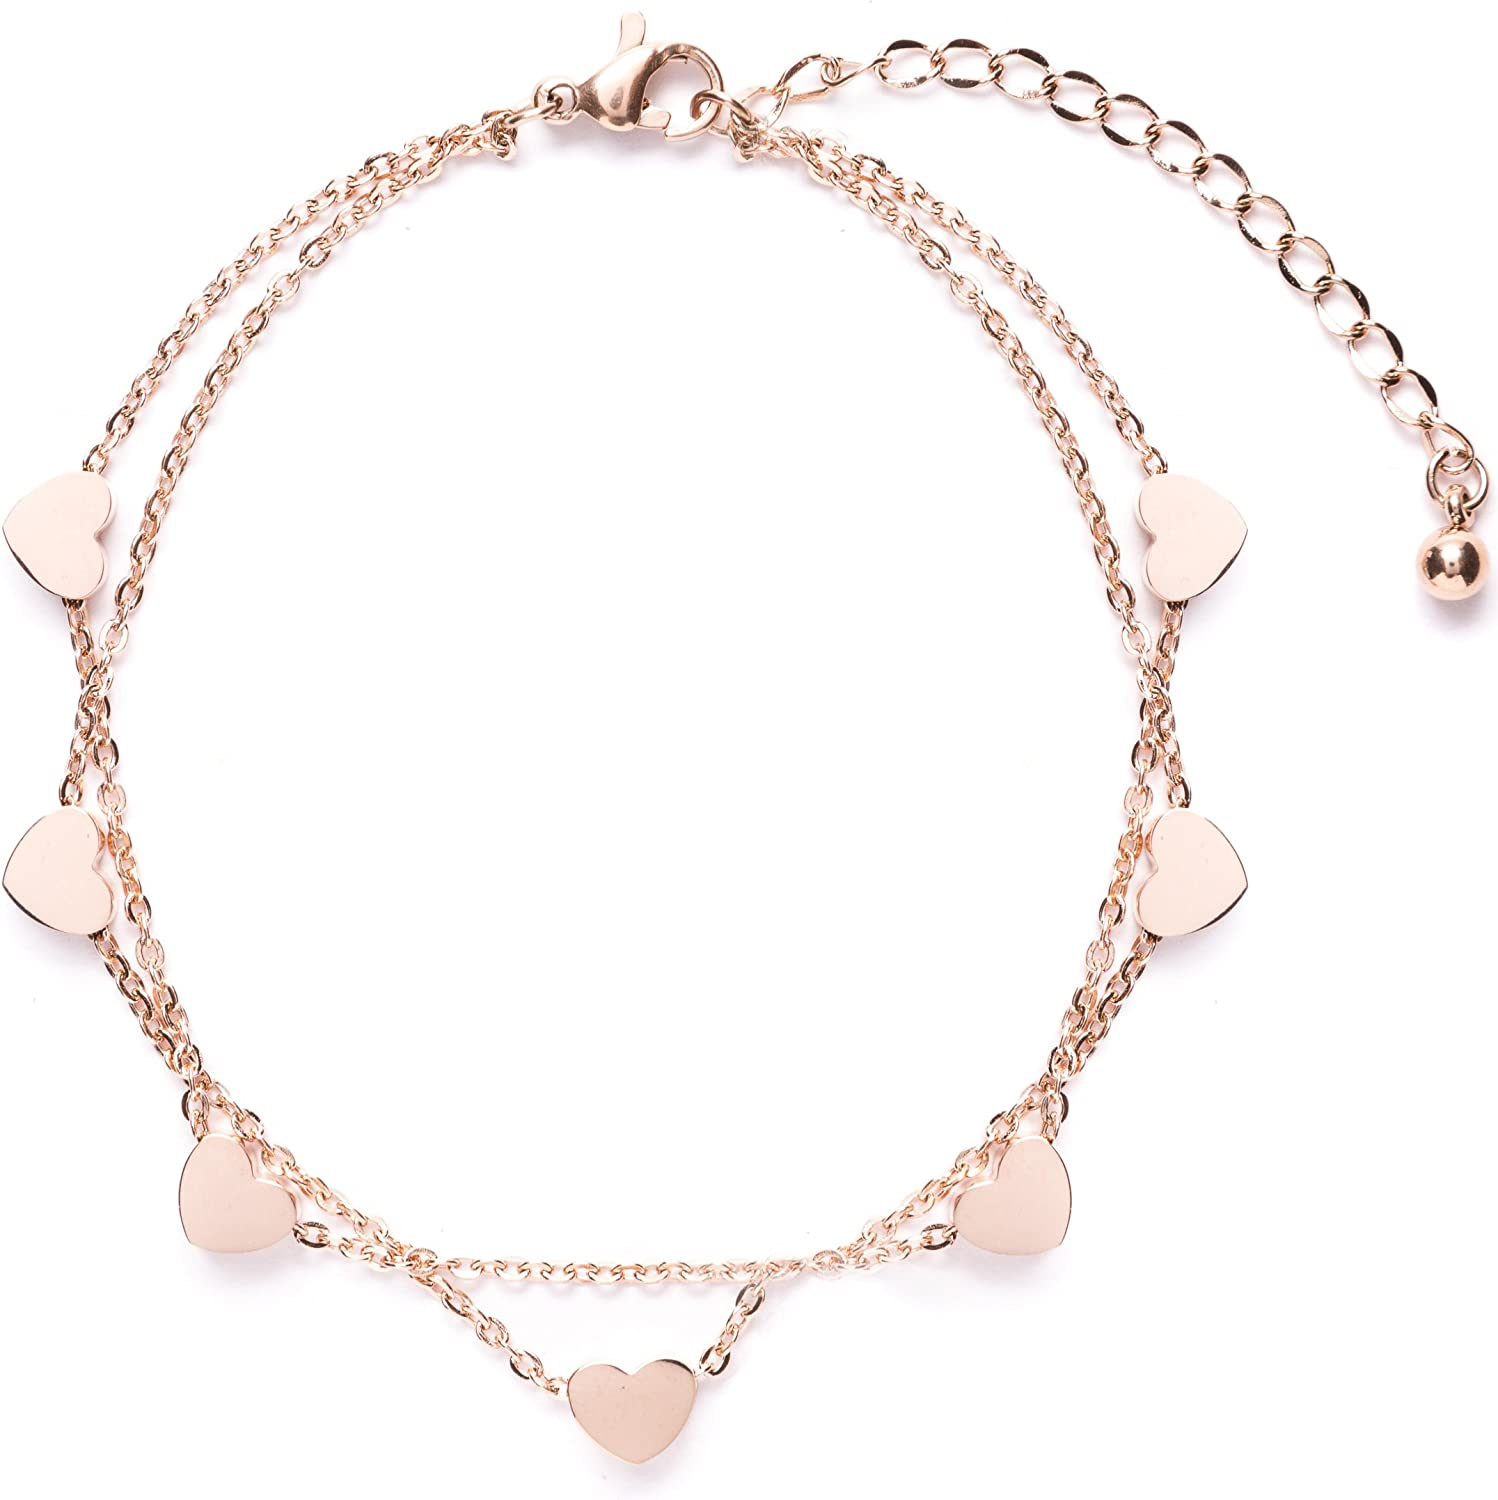 Happiness Boutique Women Delicate Bracelet Heart Charms in Rose Gold Double Stranded Bracelet